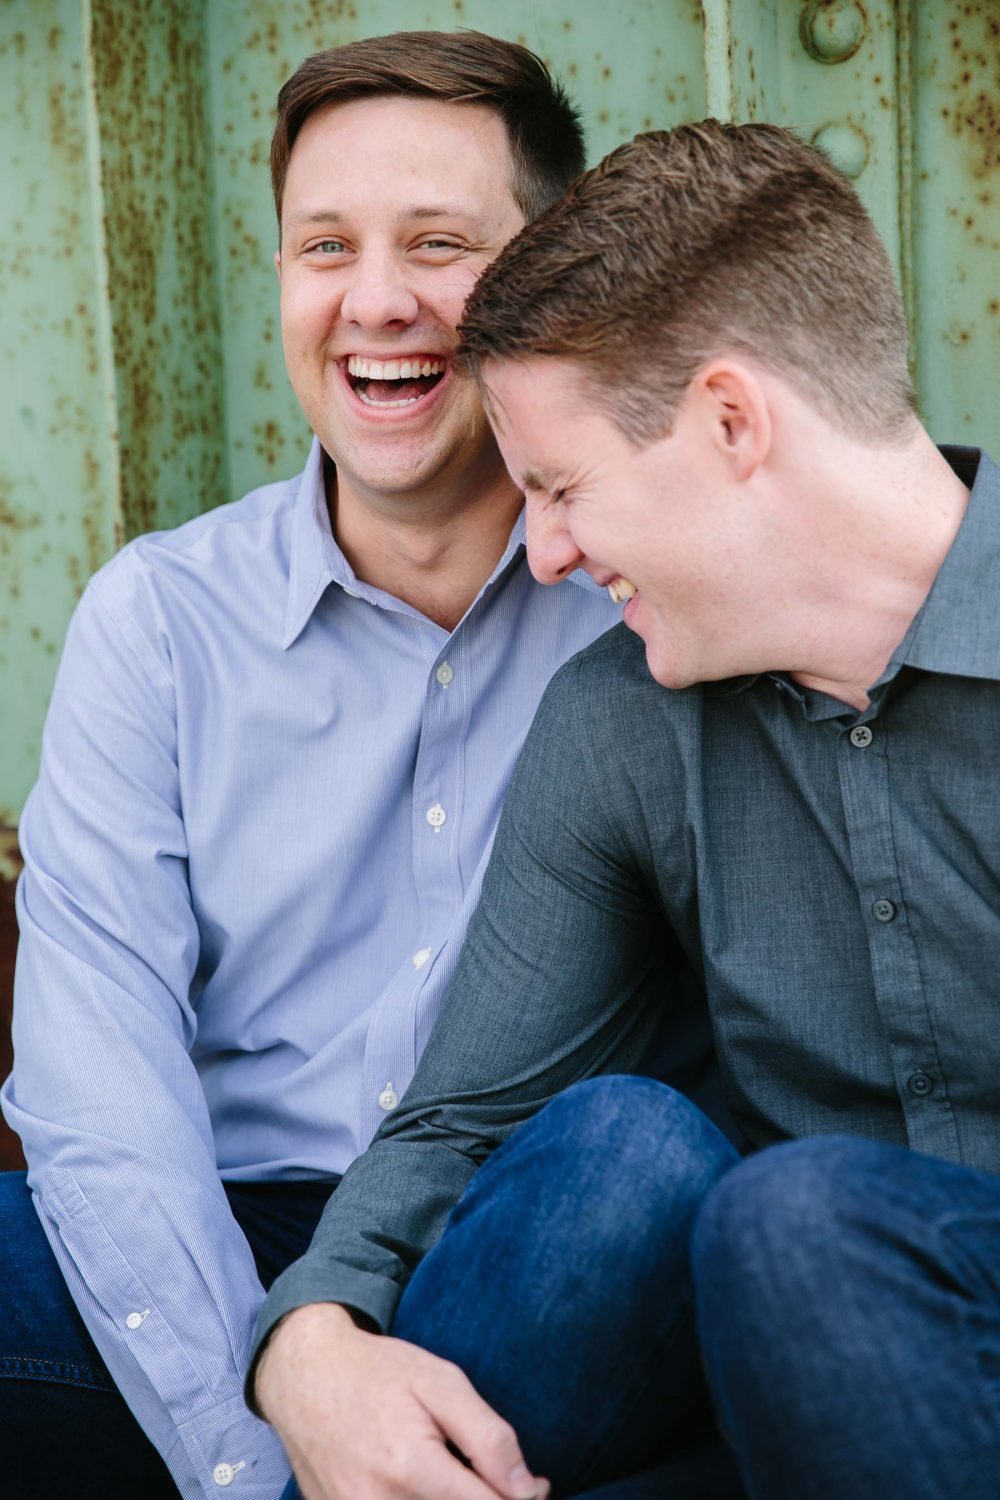 04_south-boston-engagement-shoot-same-sex-gay